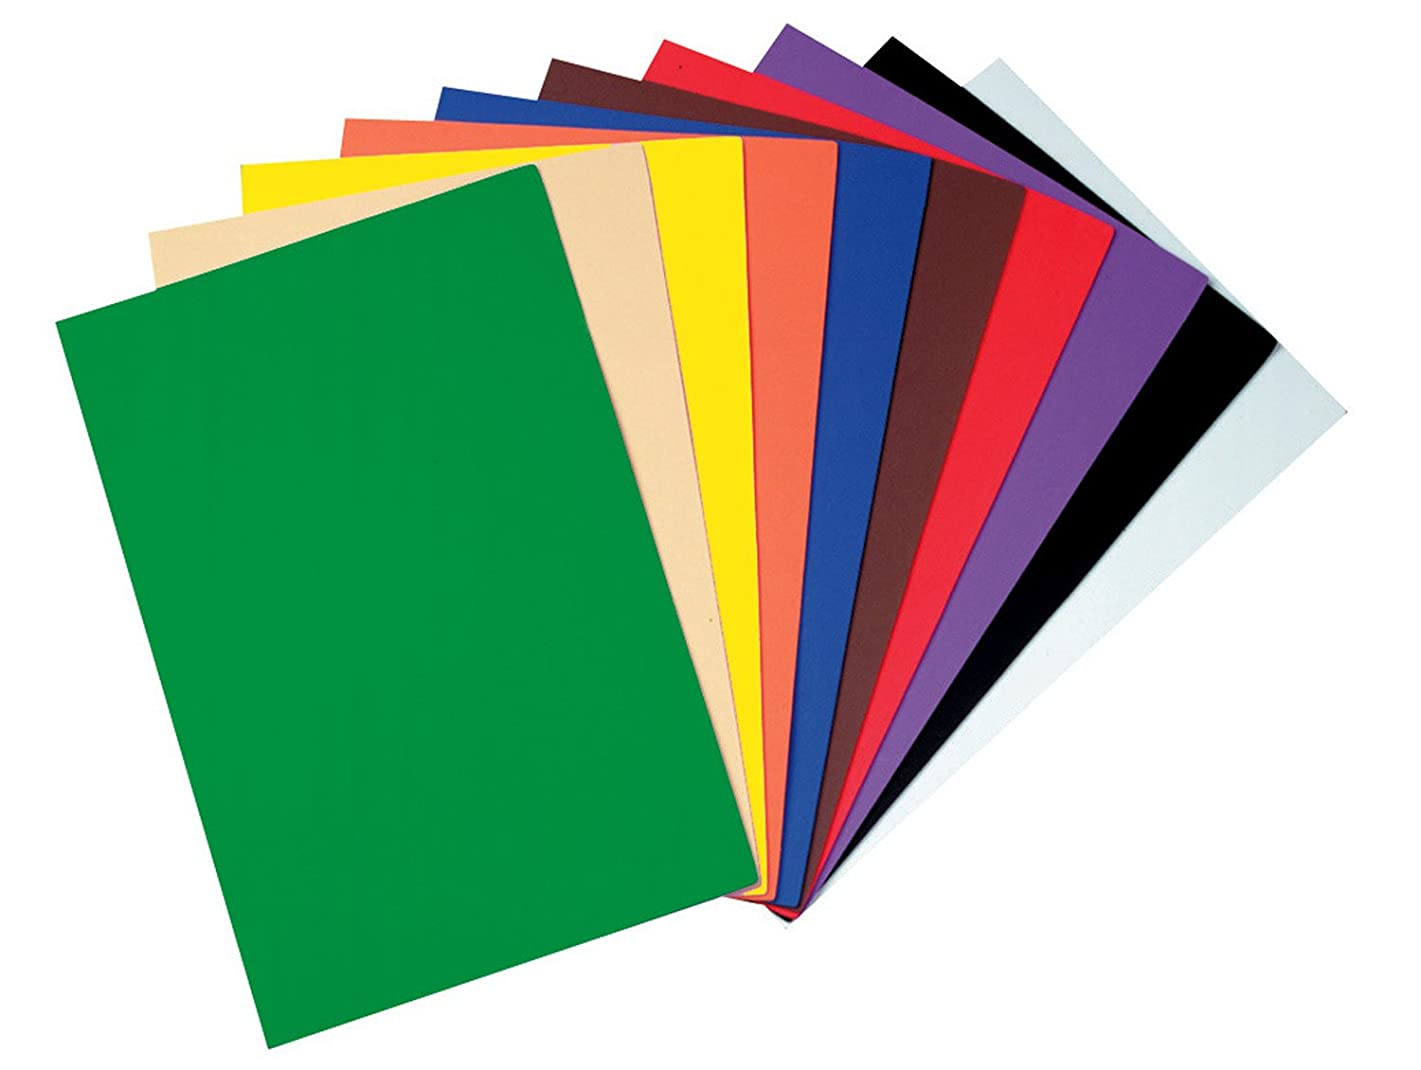 Creativity Street WonderFoam Peel & Stick Sheets, 12-inches x 18-inches, Assorted Colors, 10 Sheets (AC4306)